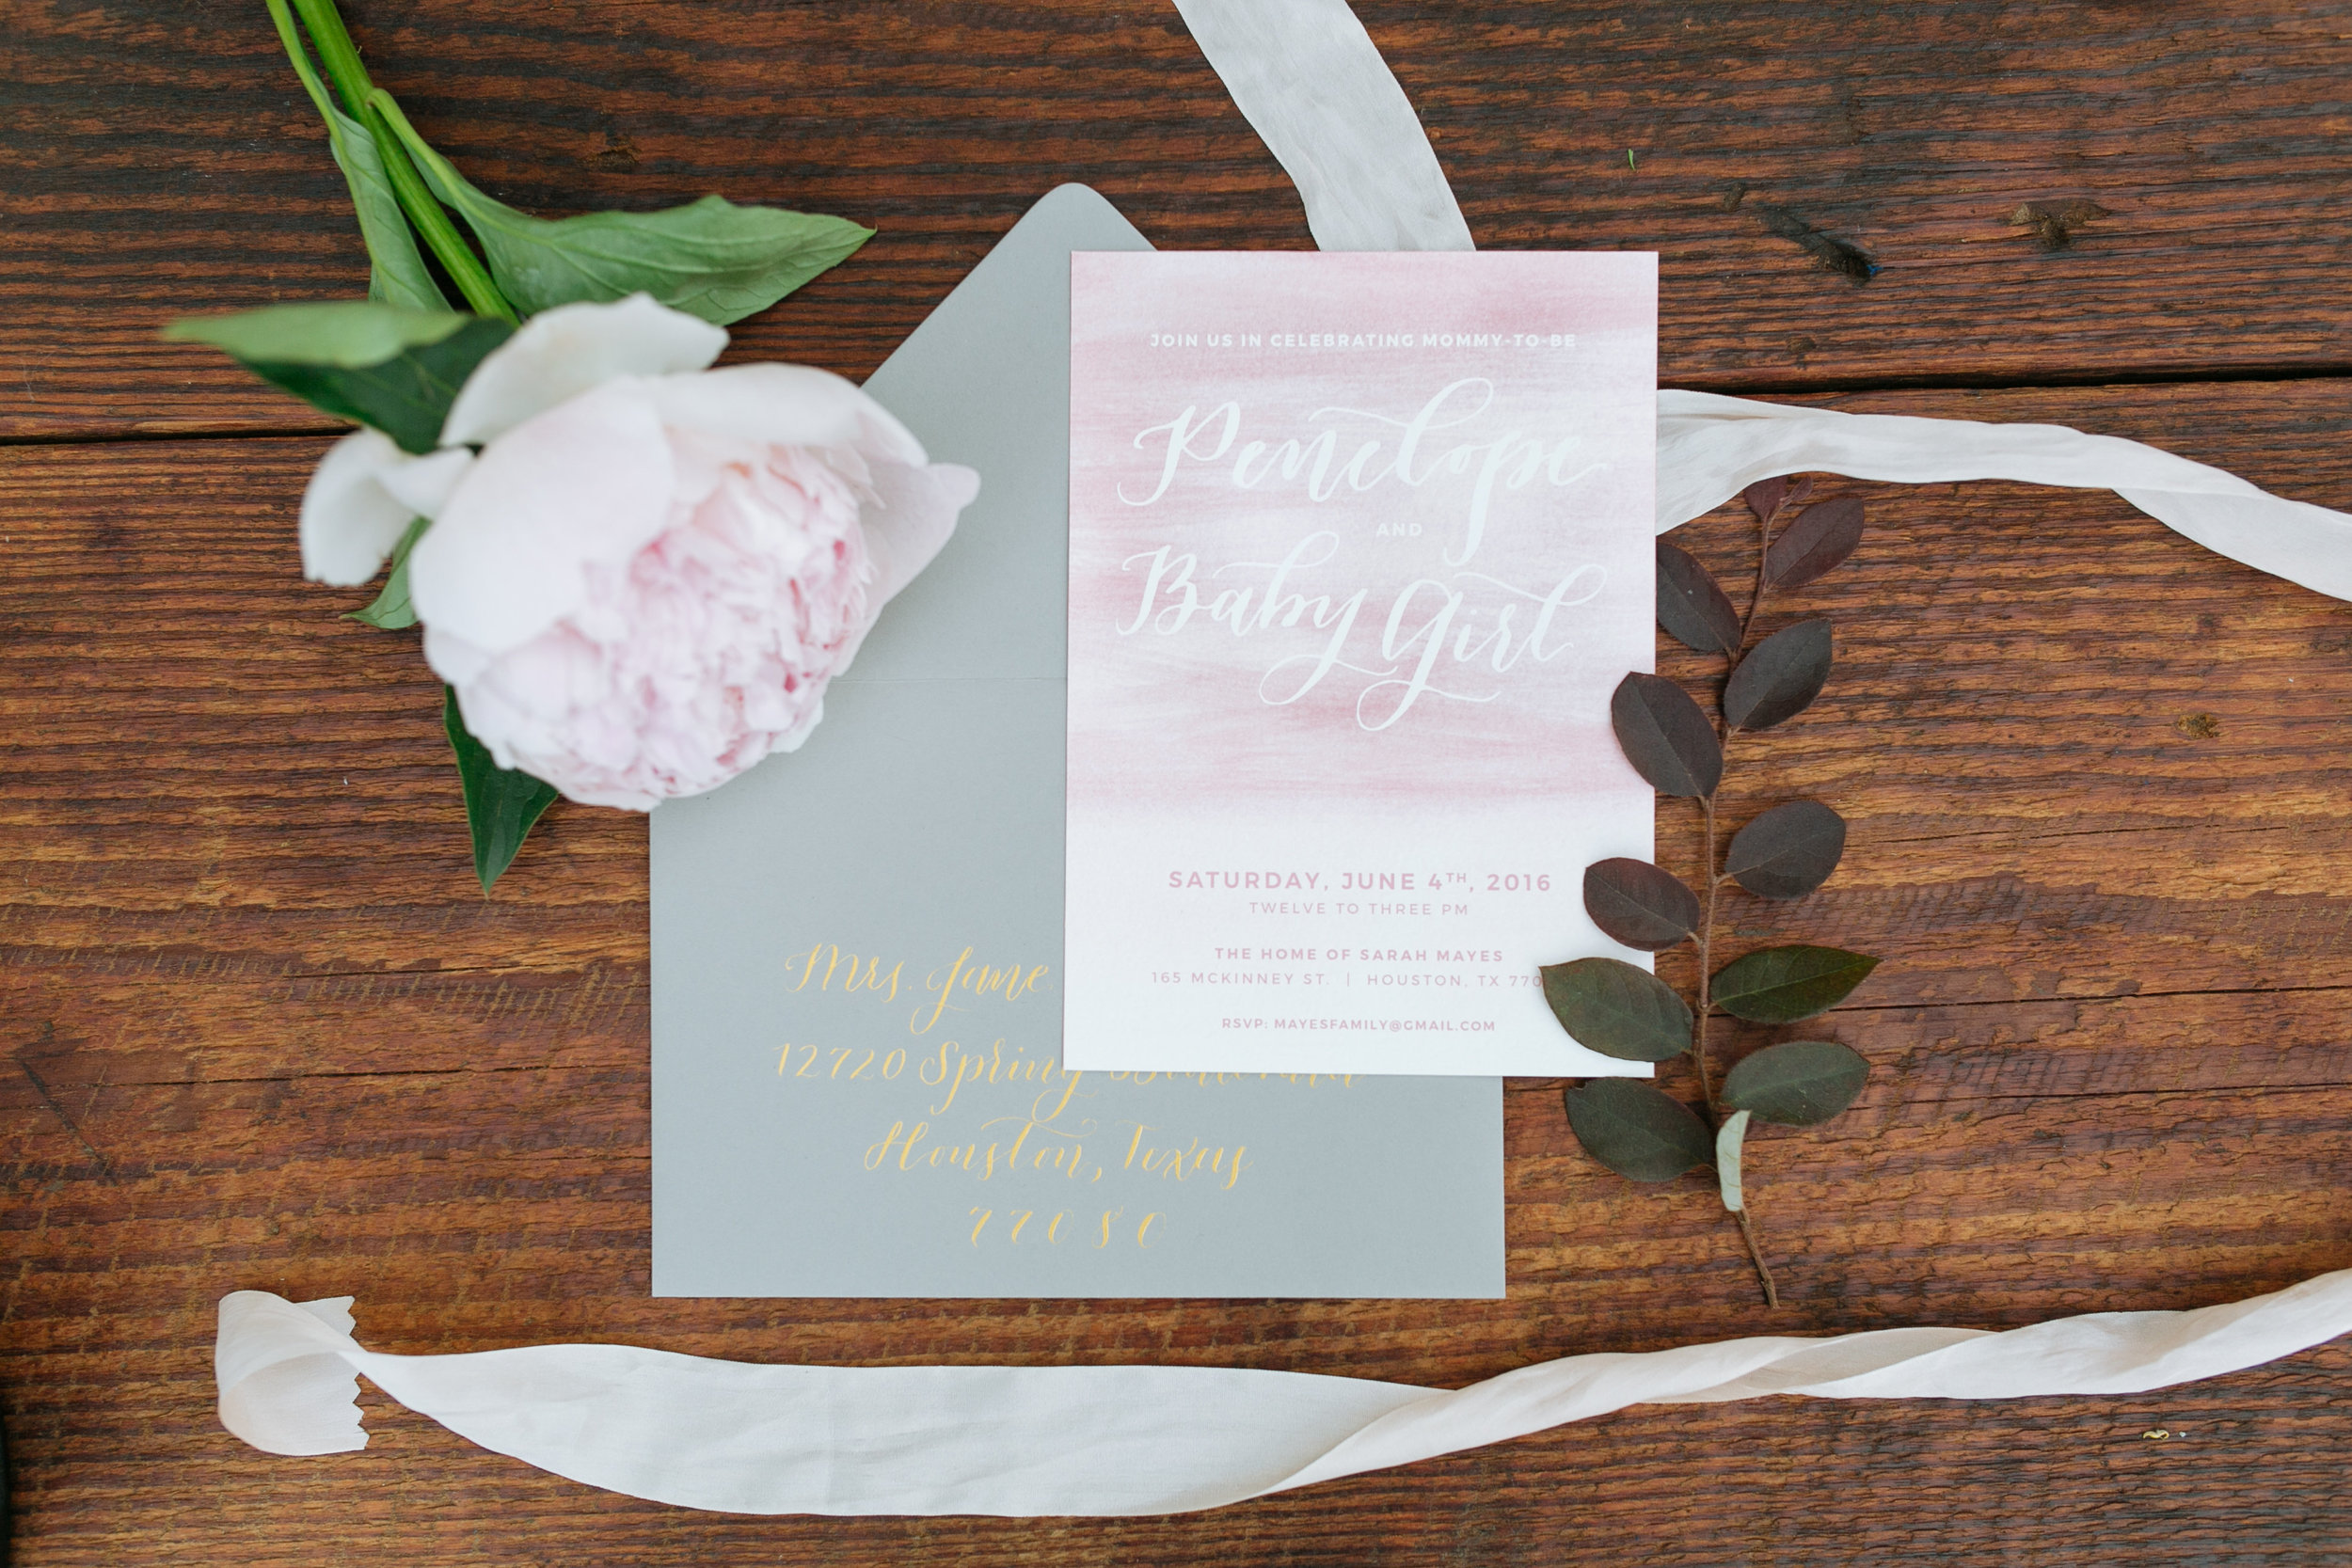 Houston Outdoor Baby Shower | Houston Event Planners | Baby Shower Ideas | Baby Shower Invitation